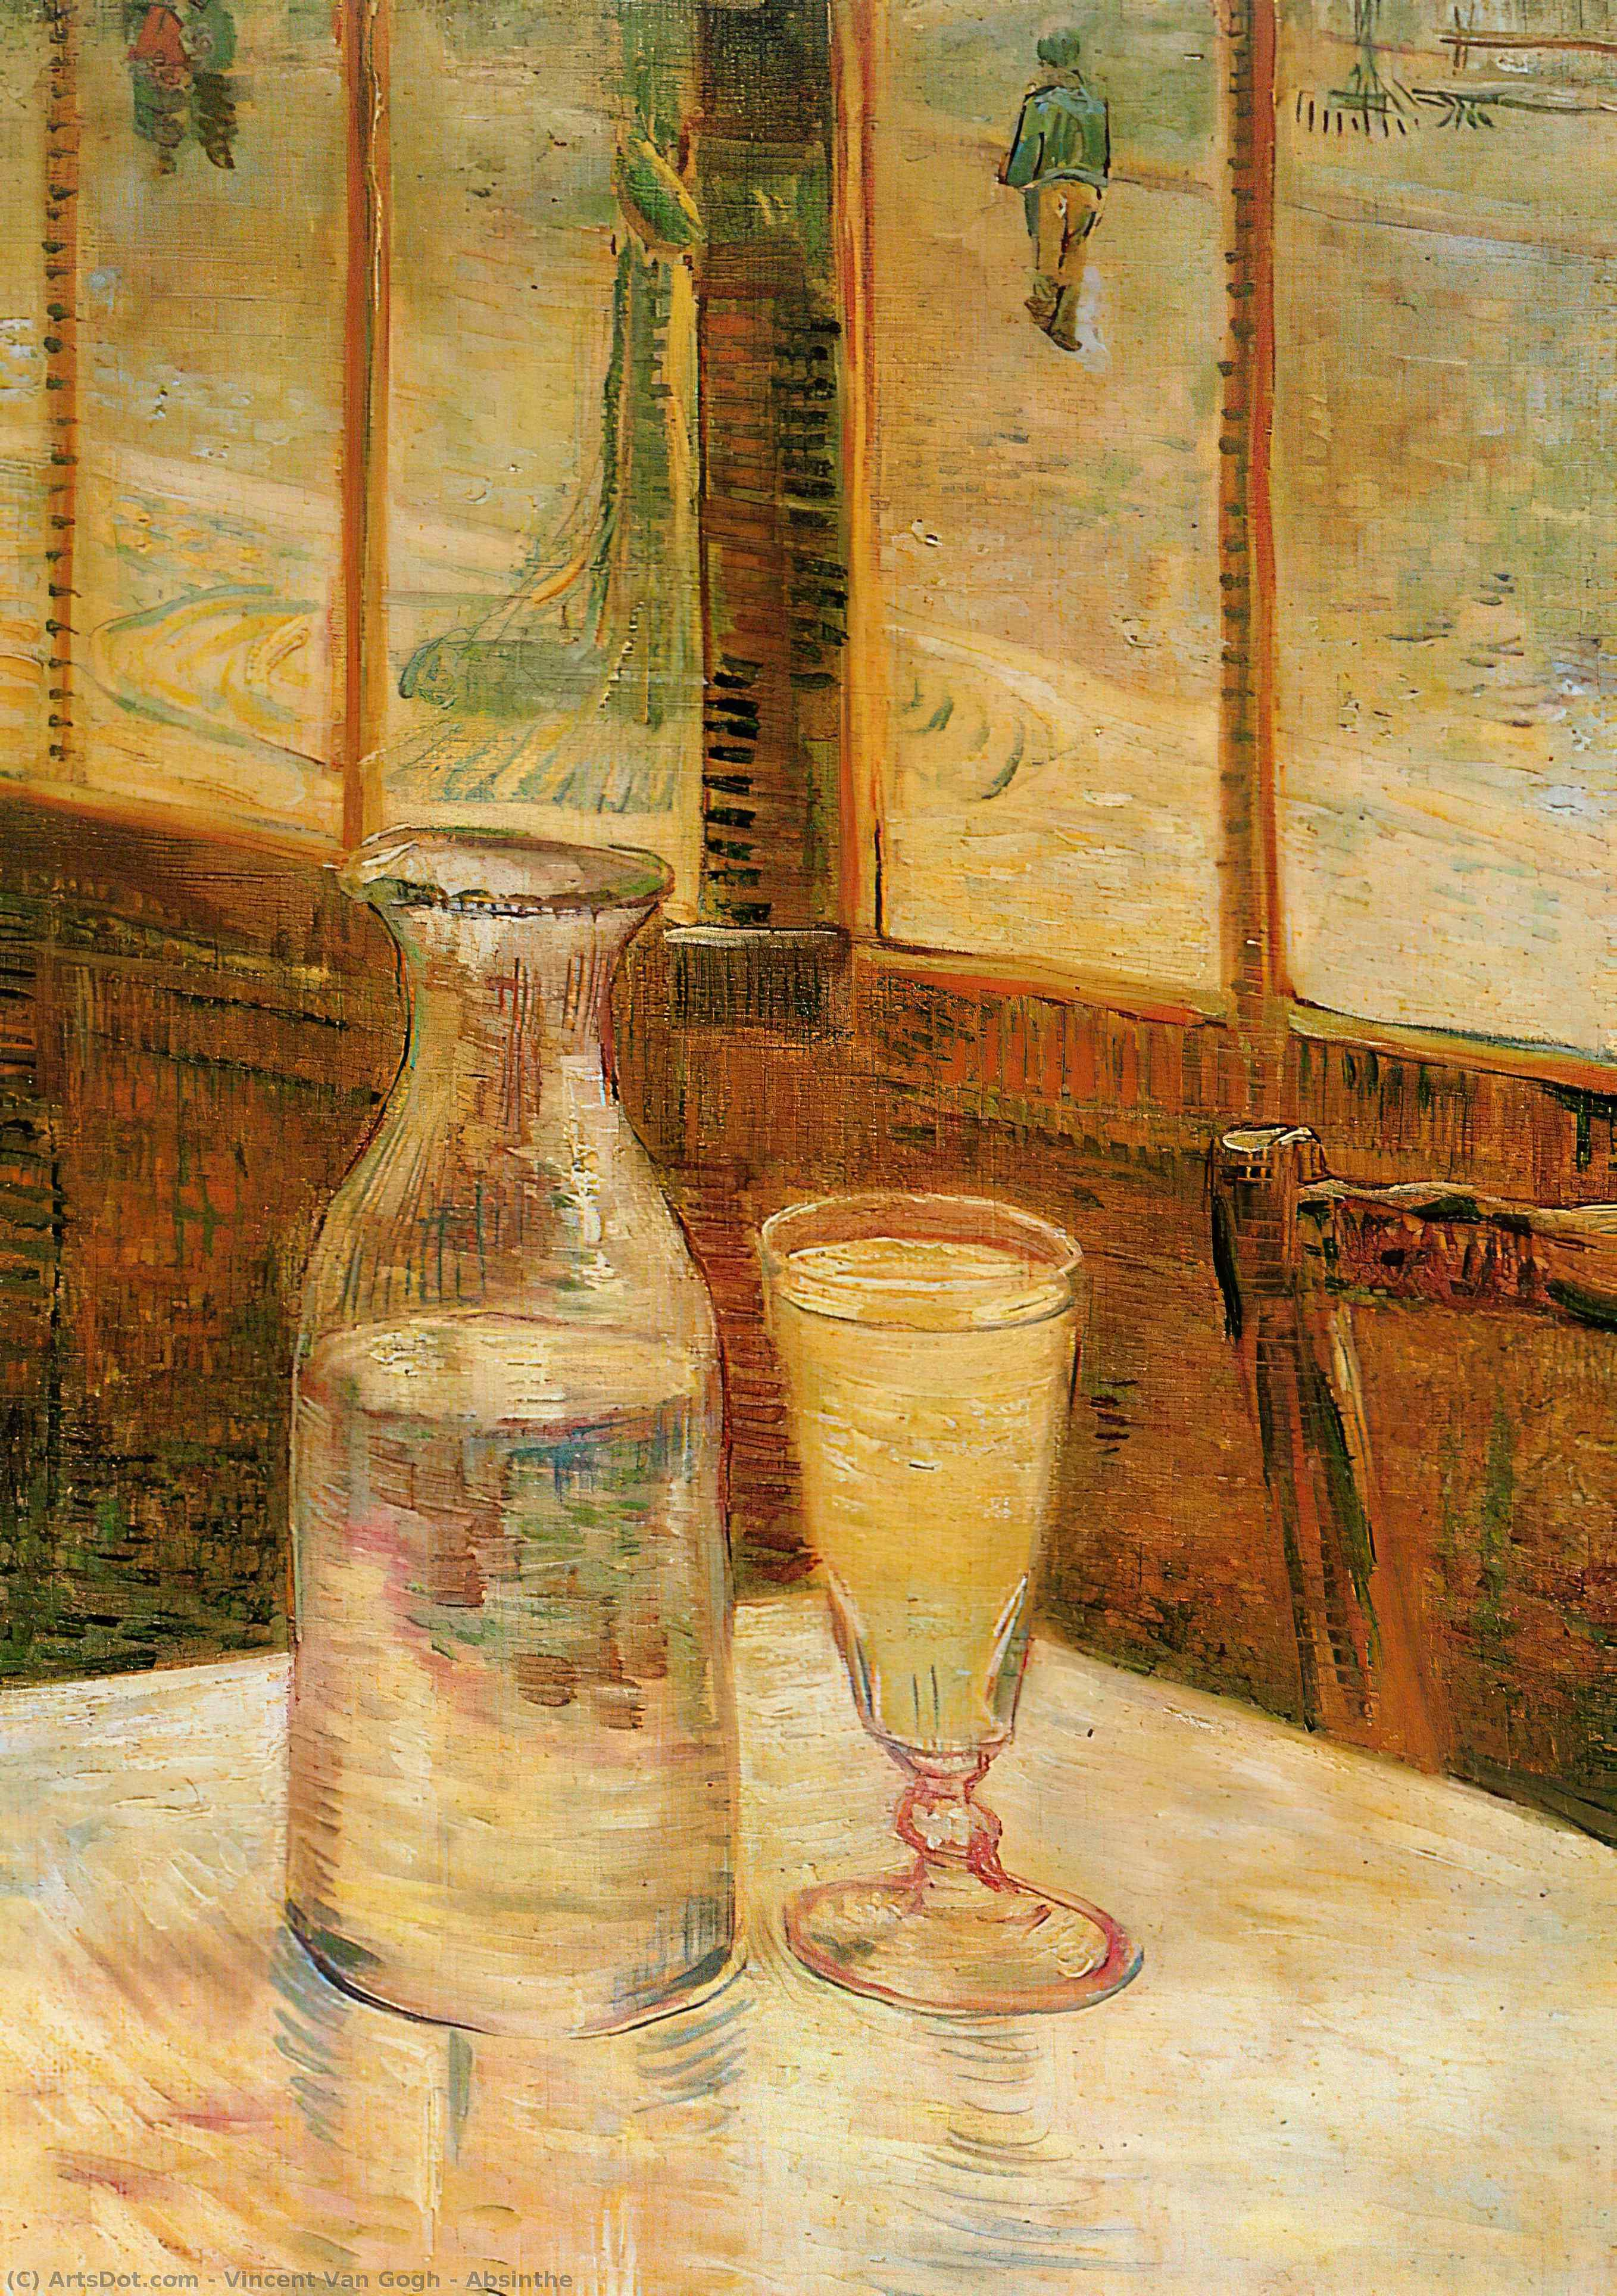 Wikioo.org - The Encyclopedia of Fine Arts - Painting, Artwork by Vincent Van Gogh - Absinthe